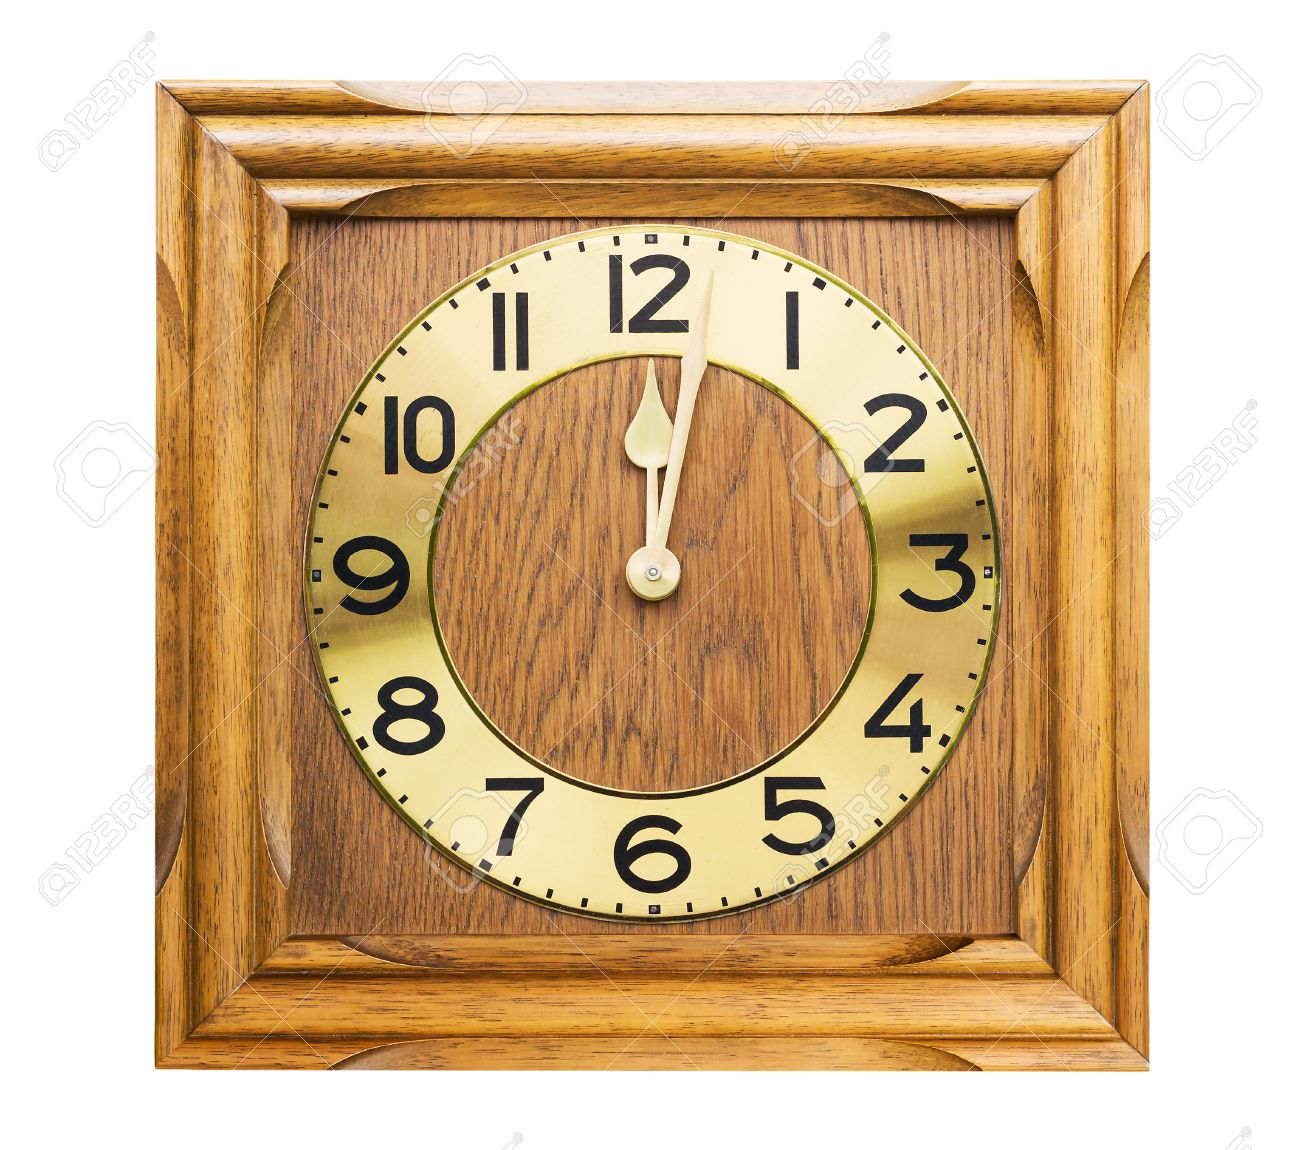 Old antique wall clock is handmade woodcraft on white Stock Photo - 23070159